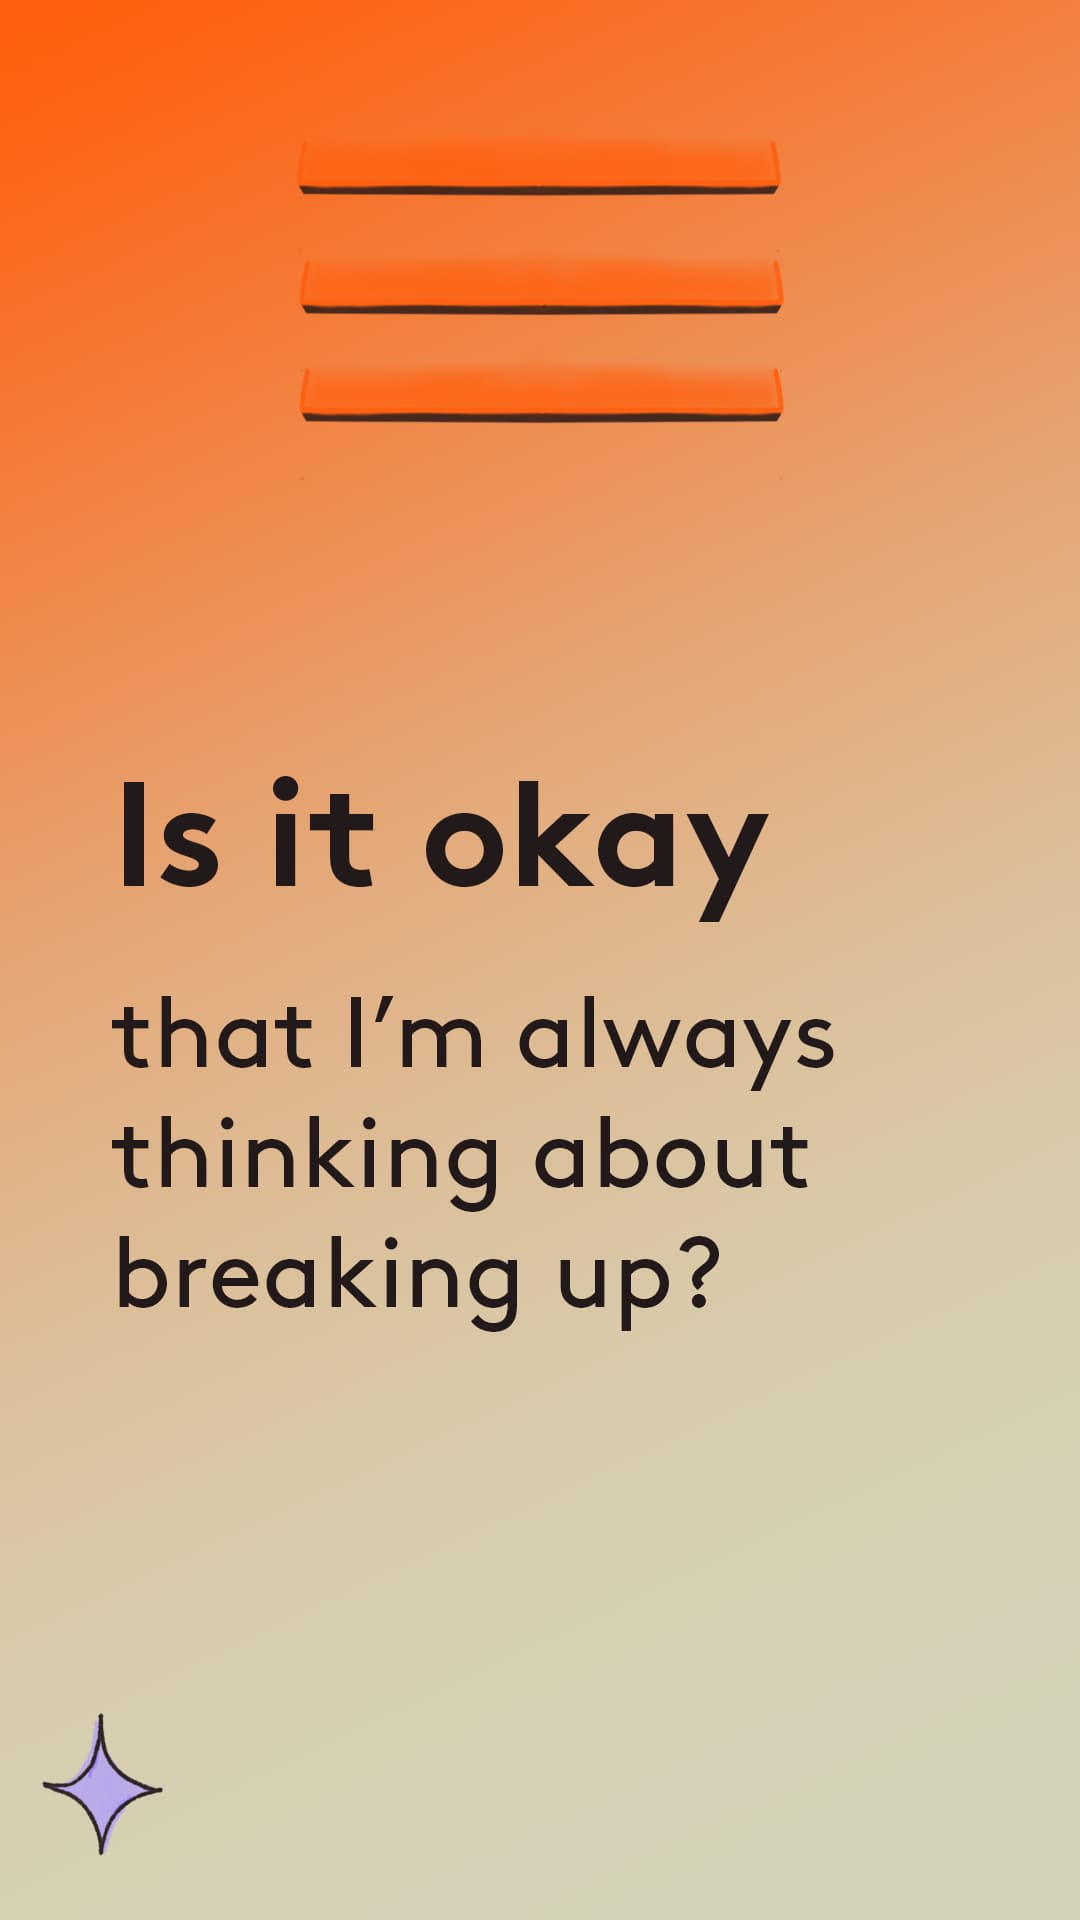 Is it okay that im always thinking about breaking up?